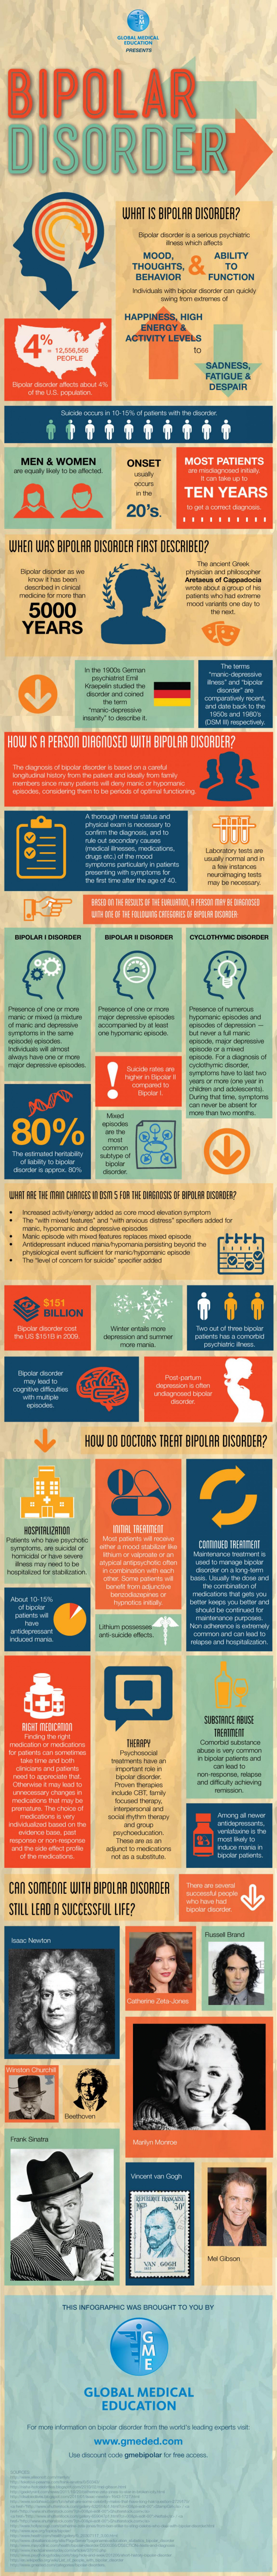 What is Bipolar Disorder? Infographic